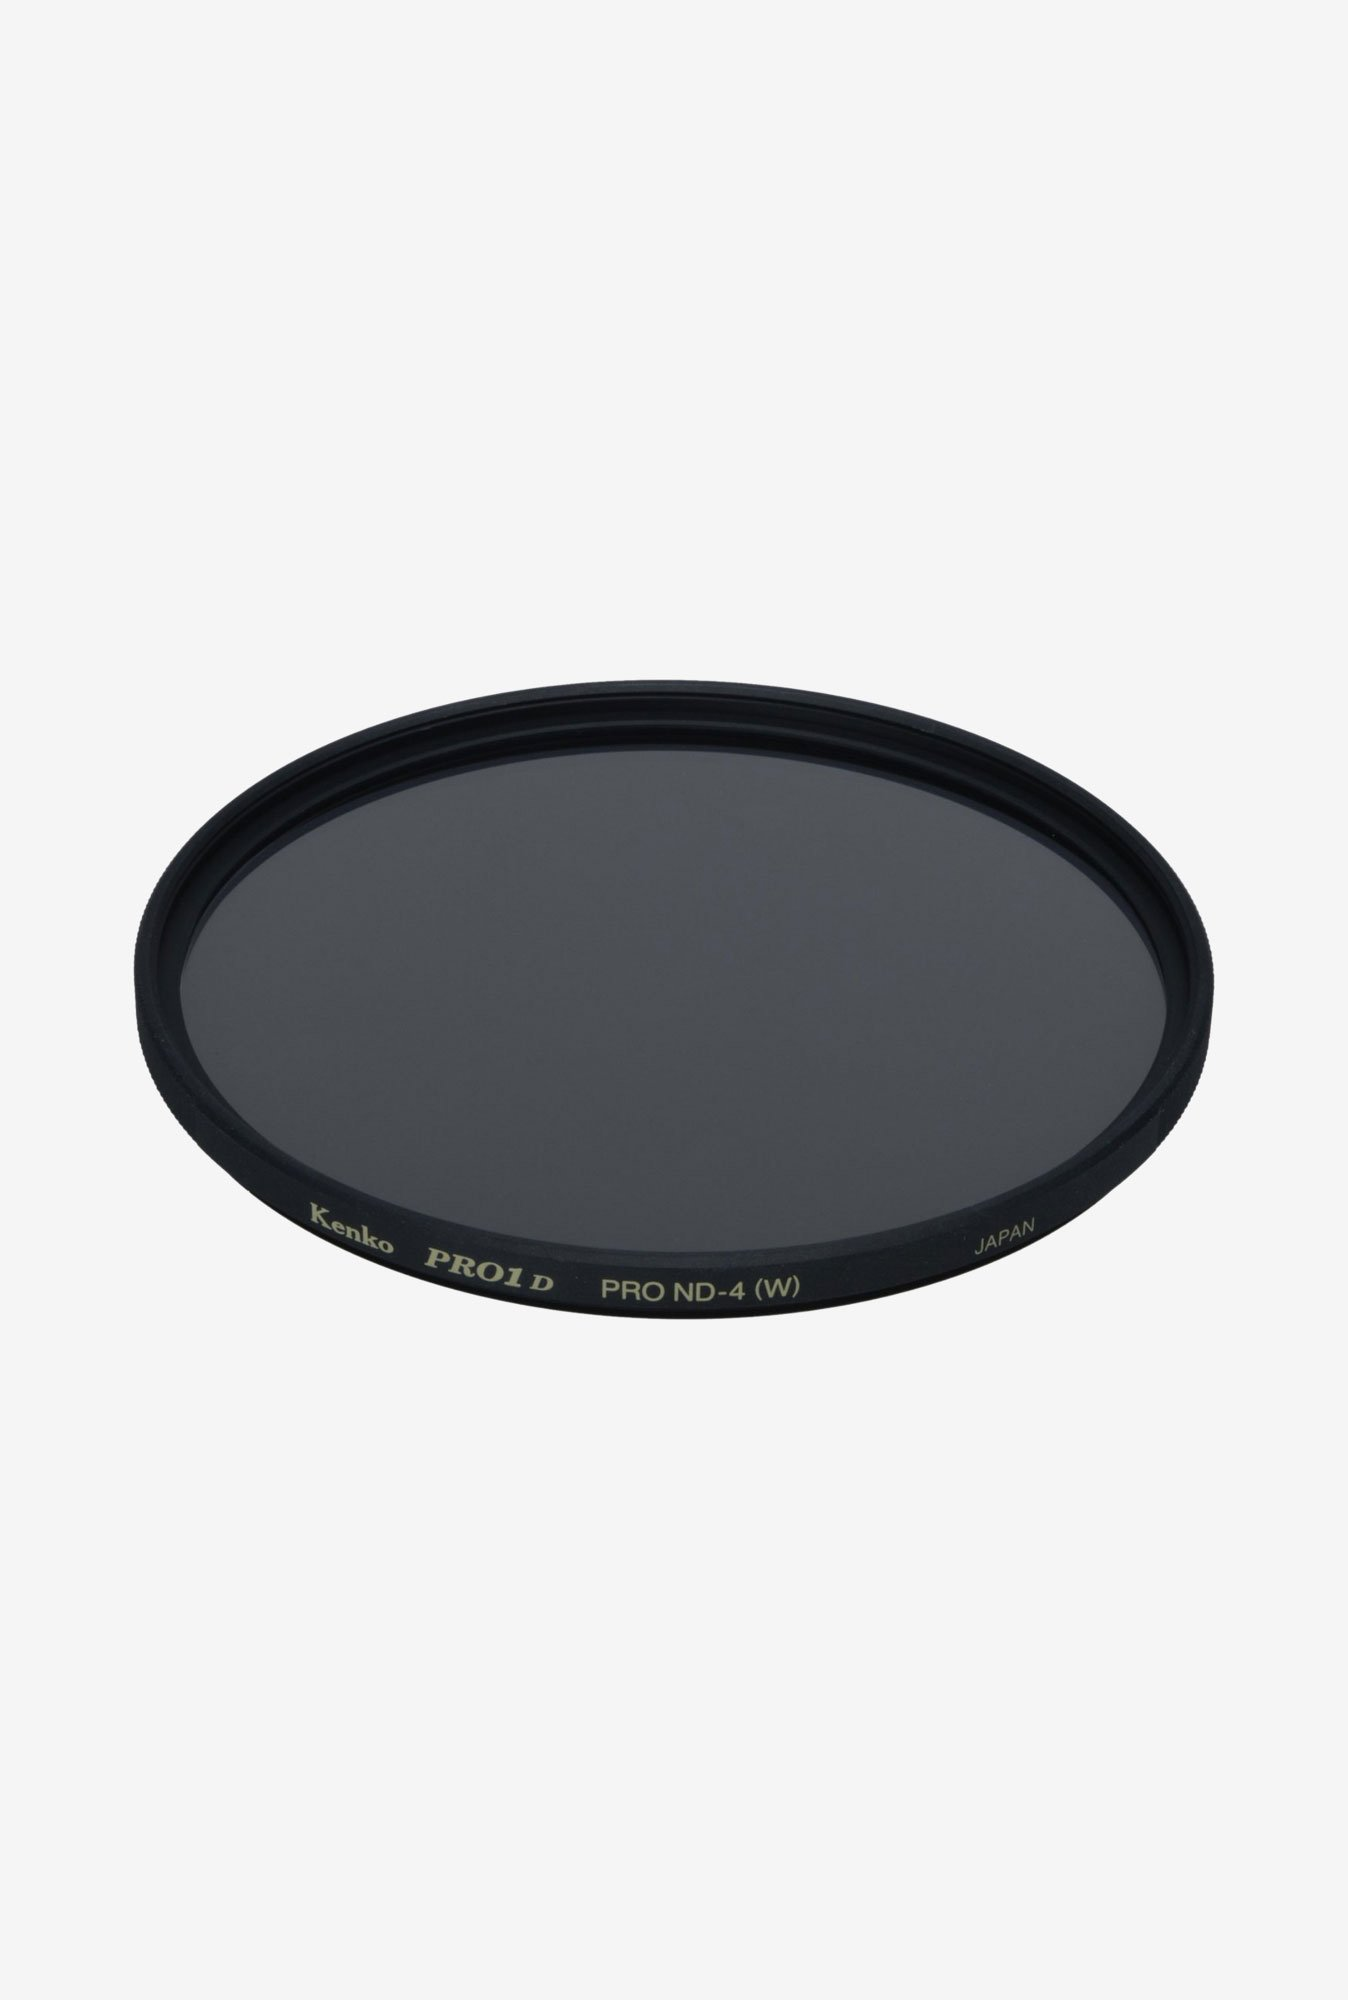 Kenko 67mm Pro ND4 Slim Frame Camera Lens Filter (Black)